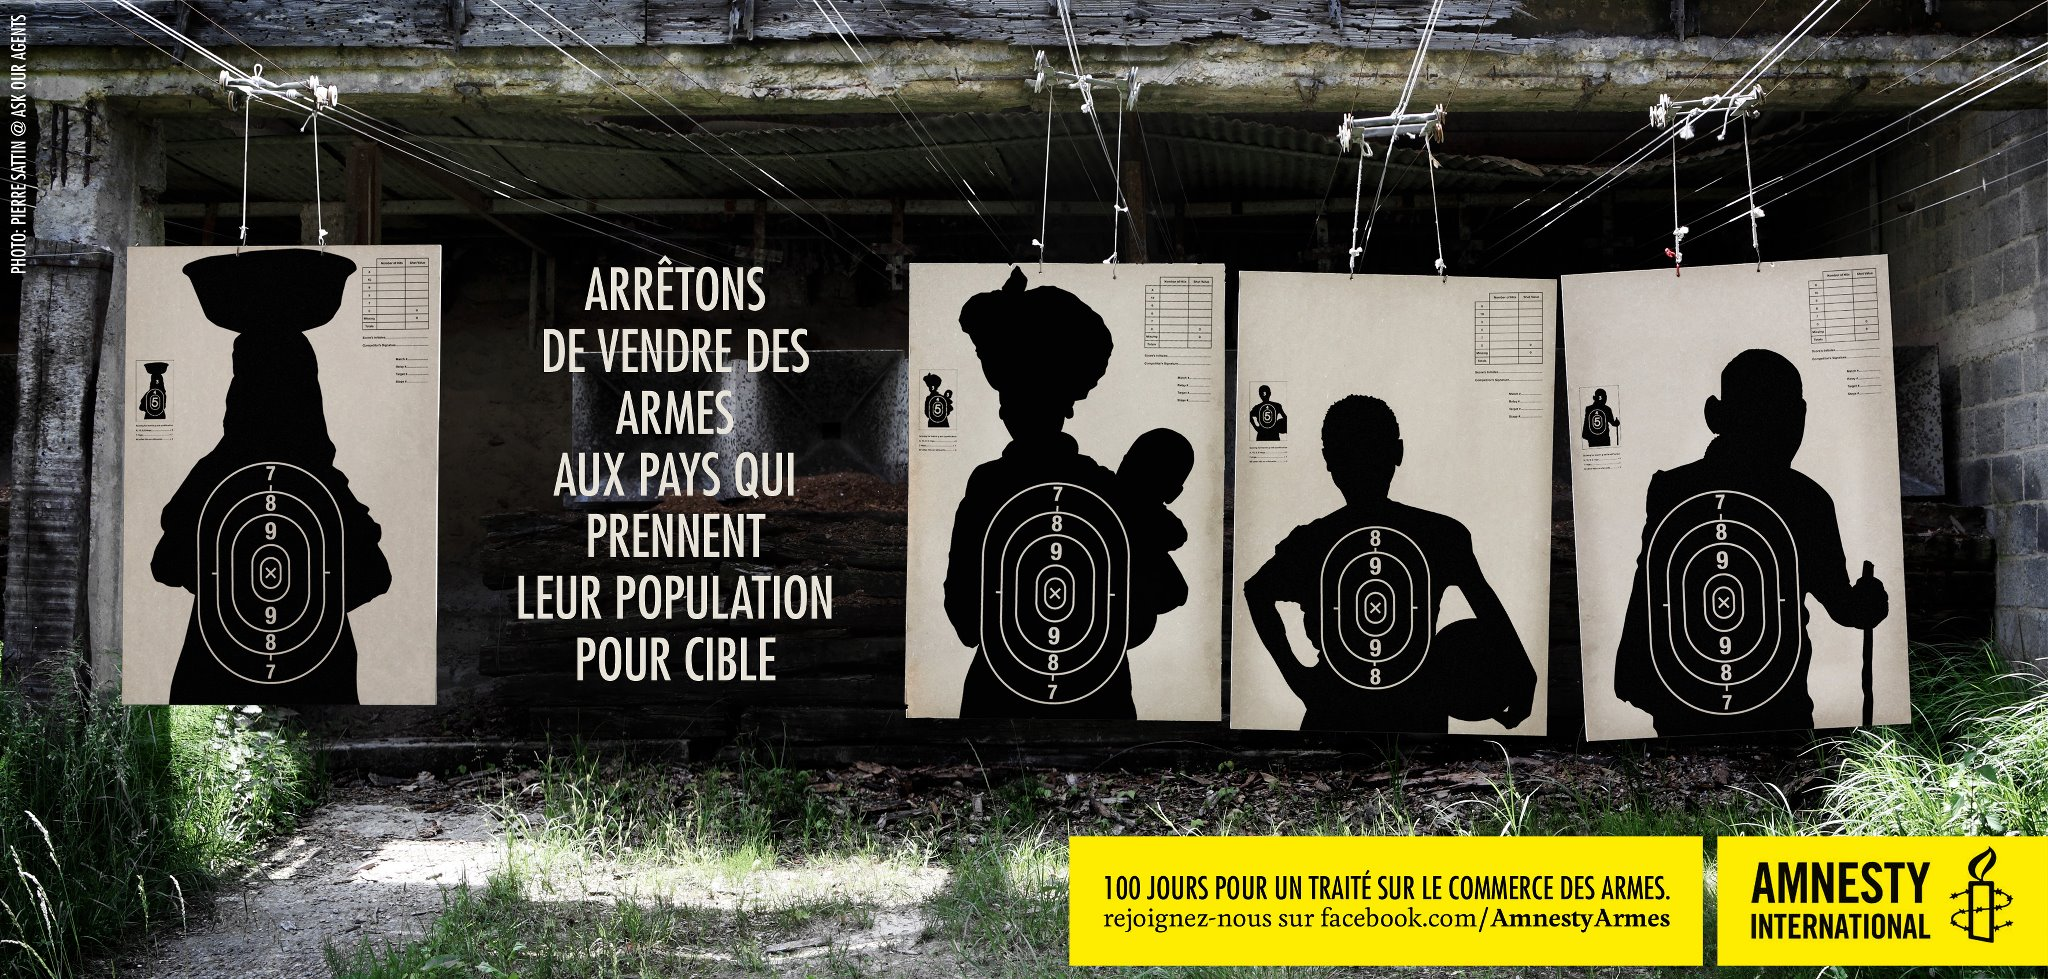 llllitl-amnesty-international-traité-commerce-des-armes-guns-population-civils-trafic-armes-guerre-civile-tbwa-paris-juin-2012